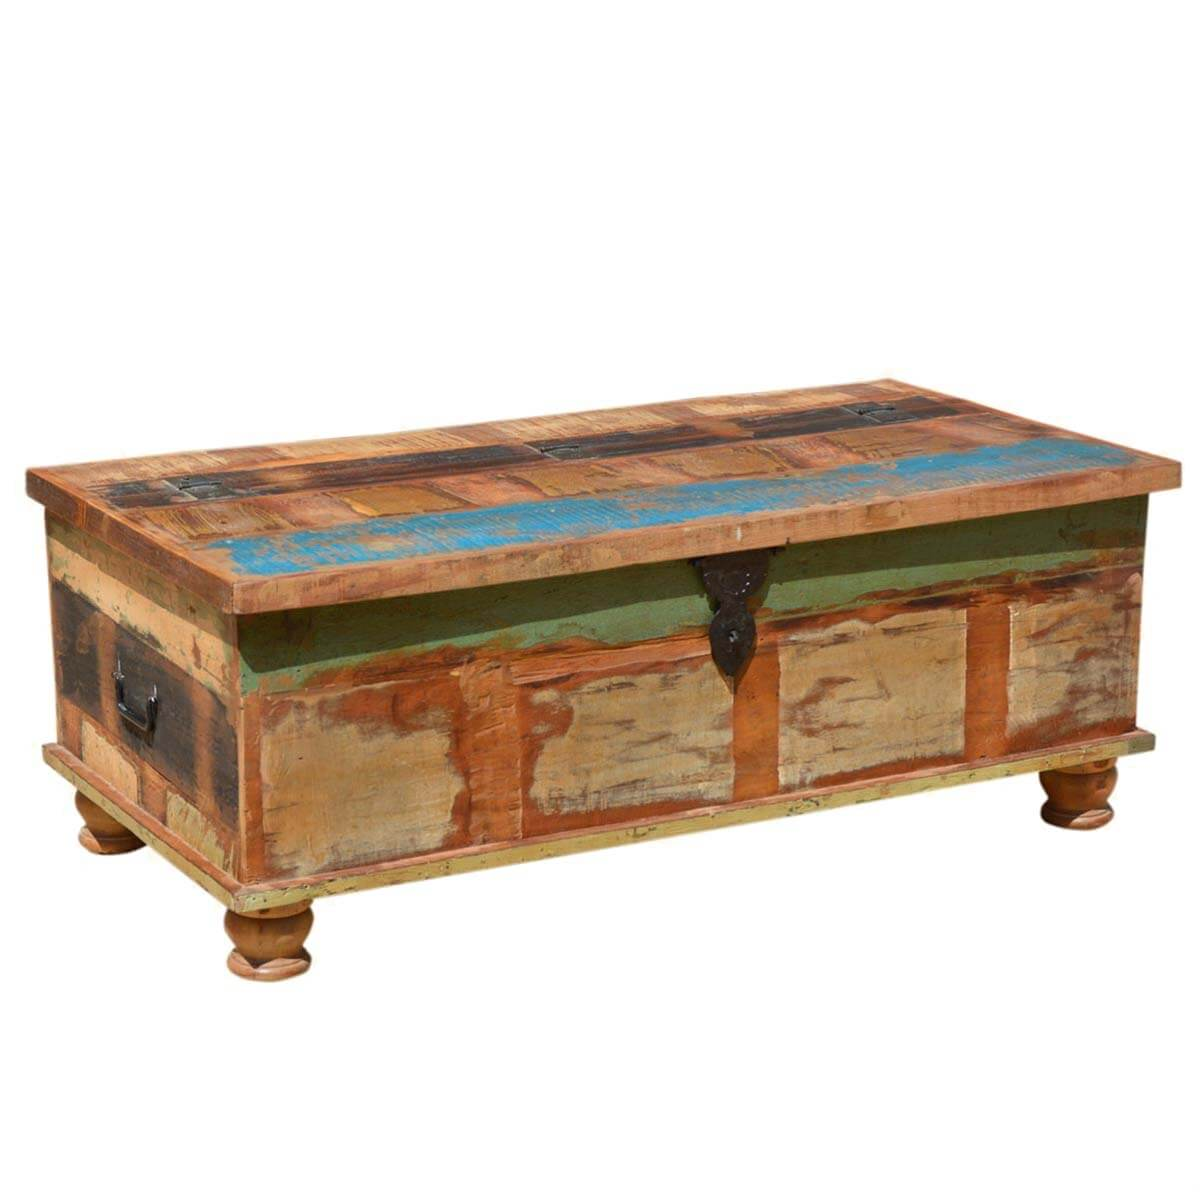 Grinnell rustic reclaimed wood coffee table storage trunk for Reclaimed teak wood coffee table